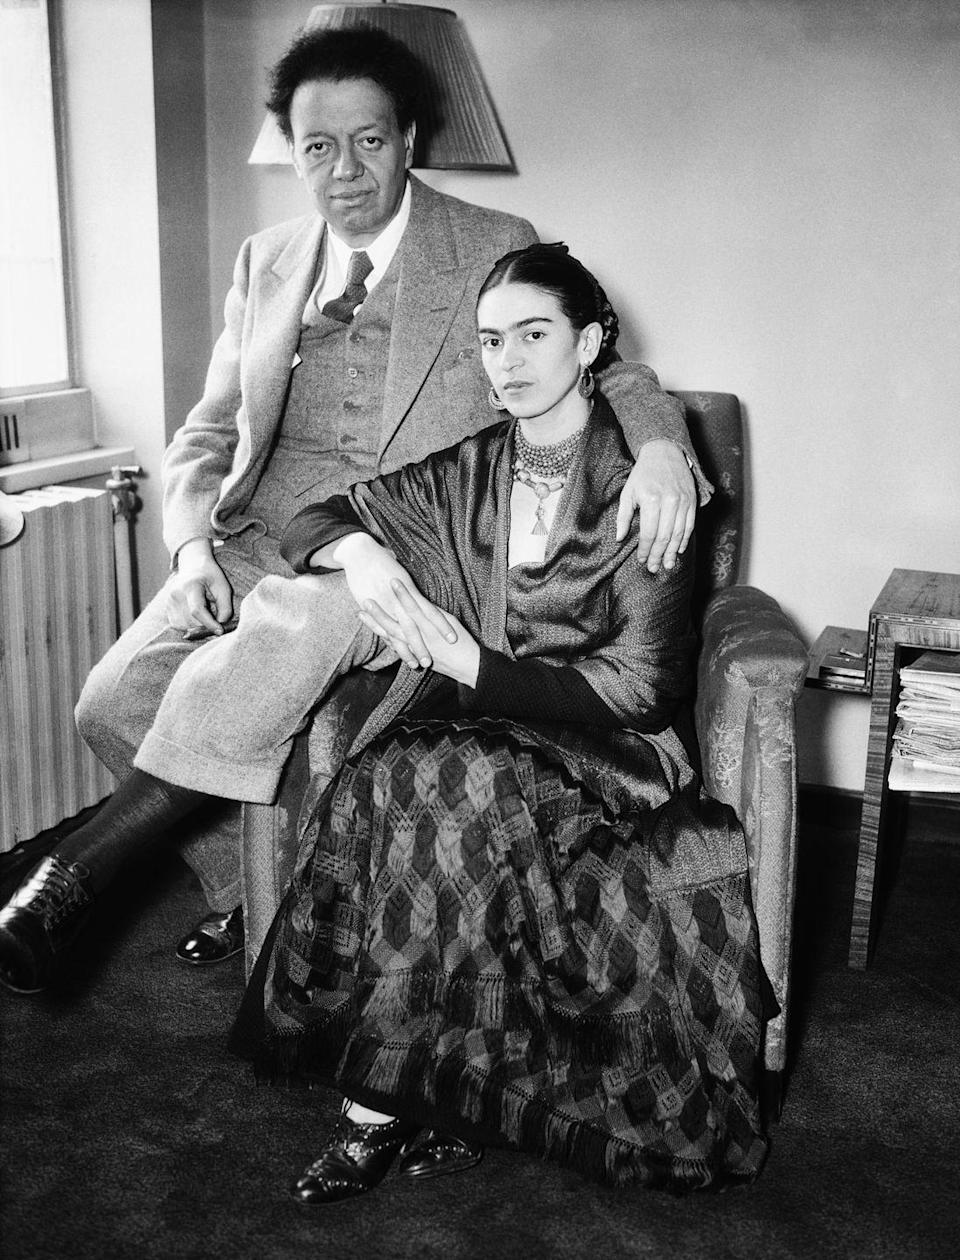 """<p>Renowned Mexican painter Frida Kahlo's marriage to Diego Rivera was known for being complex. The couple, who married for the first time in 1929, <a href=""""https://www.riseart.com/guide/2291/art-world-news-frida-kahlo-and-diego-rivera-romance-and-heartbreak"""" rel=""""nofollow noopener"""" target=""""_blank"""" data-ylk=""""slk:fought constantly and divorced in 1939"""" class=""""link rapid-noclick-resp"""">fought constantly and divorced in 1939</a>. One year after the dissolution of their union, the artists remarried in 1940 and were together until Frida's death in 1954. </p>"""